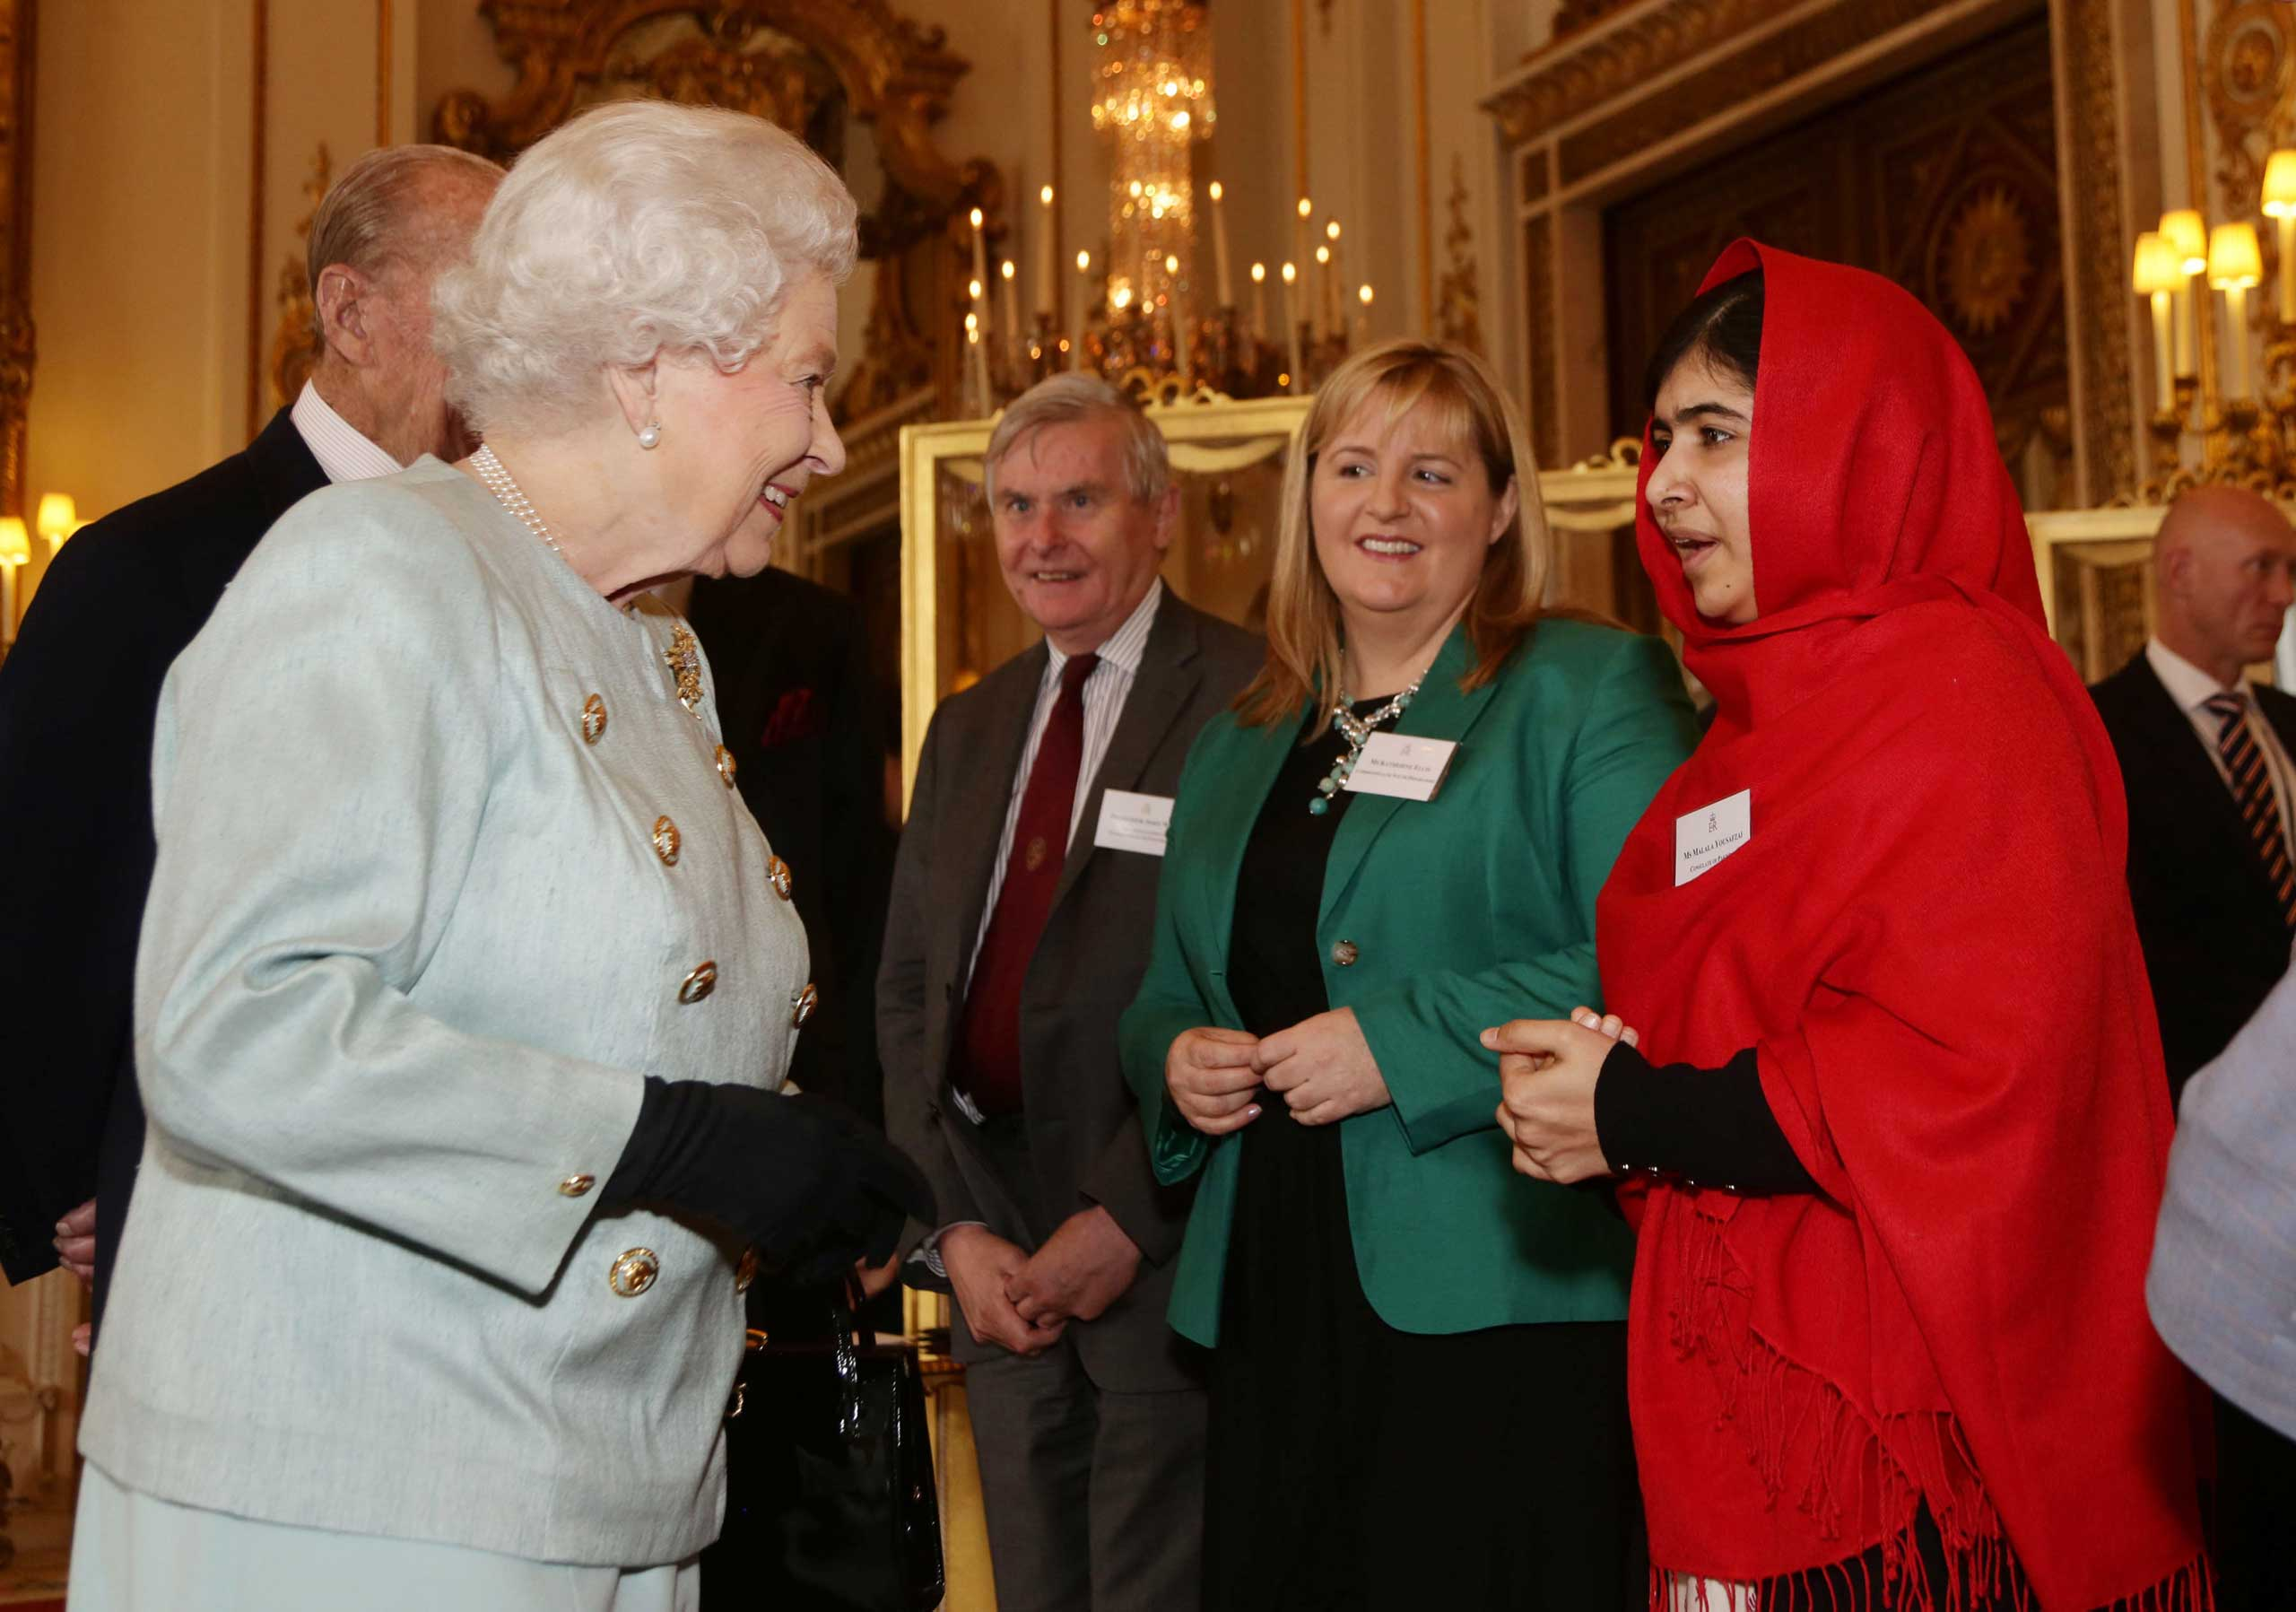 Queen Elizabeth II and Prince Philip meet Malala Yousafzai during a Reception for Youth, Education and the Commonwealth at Buckingham Palace in London on Oct. 18, 2013.